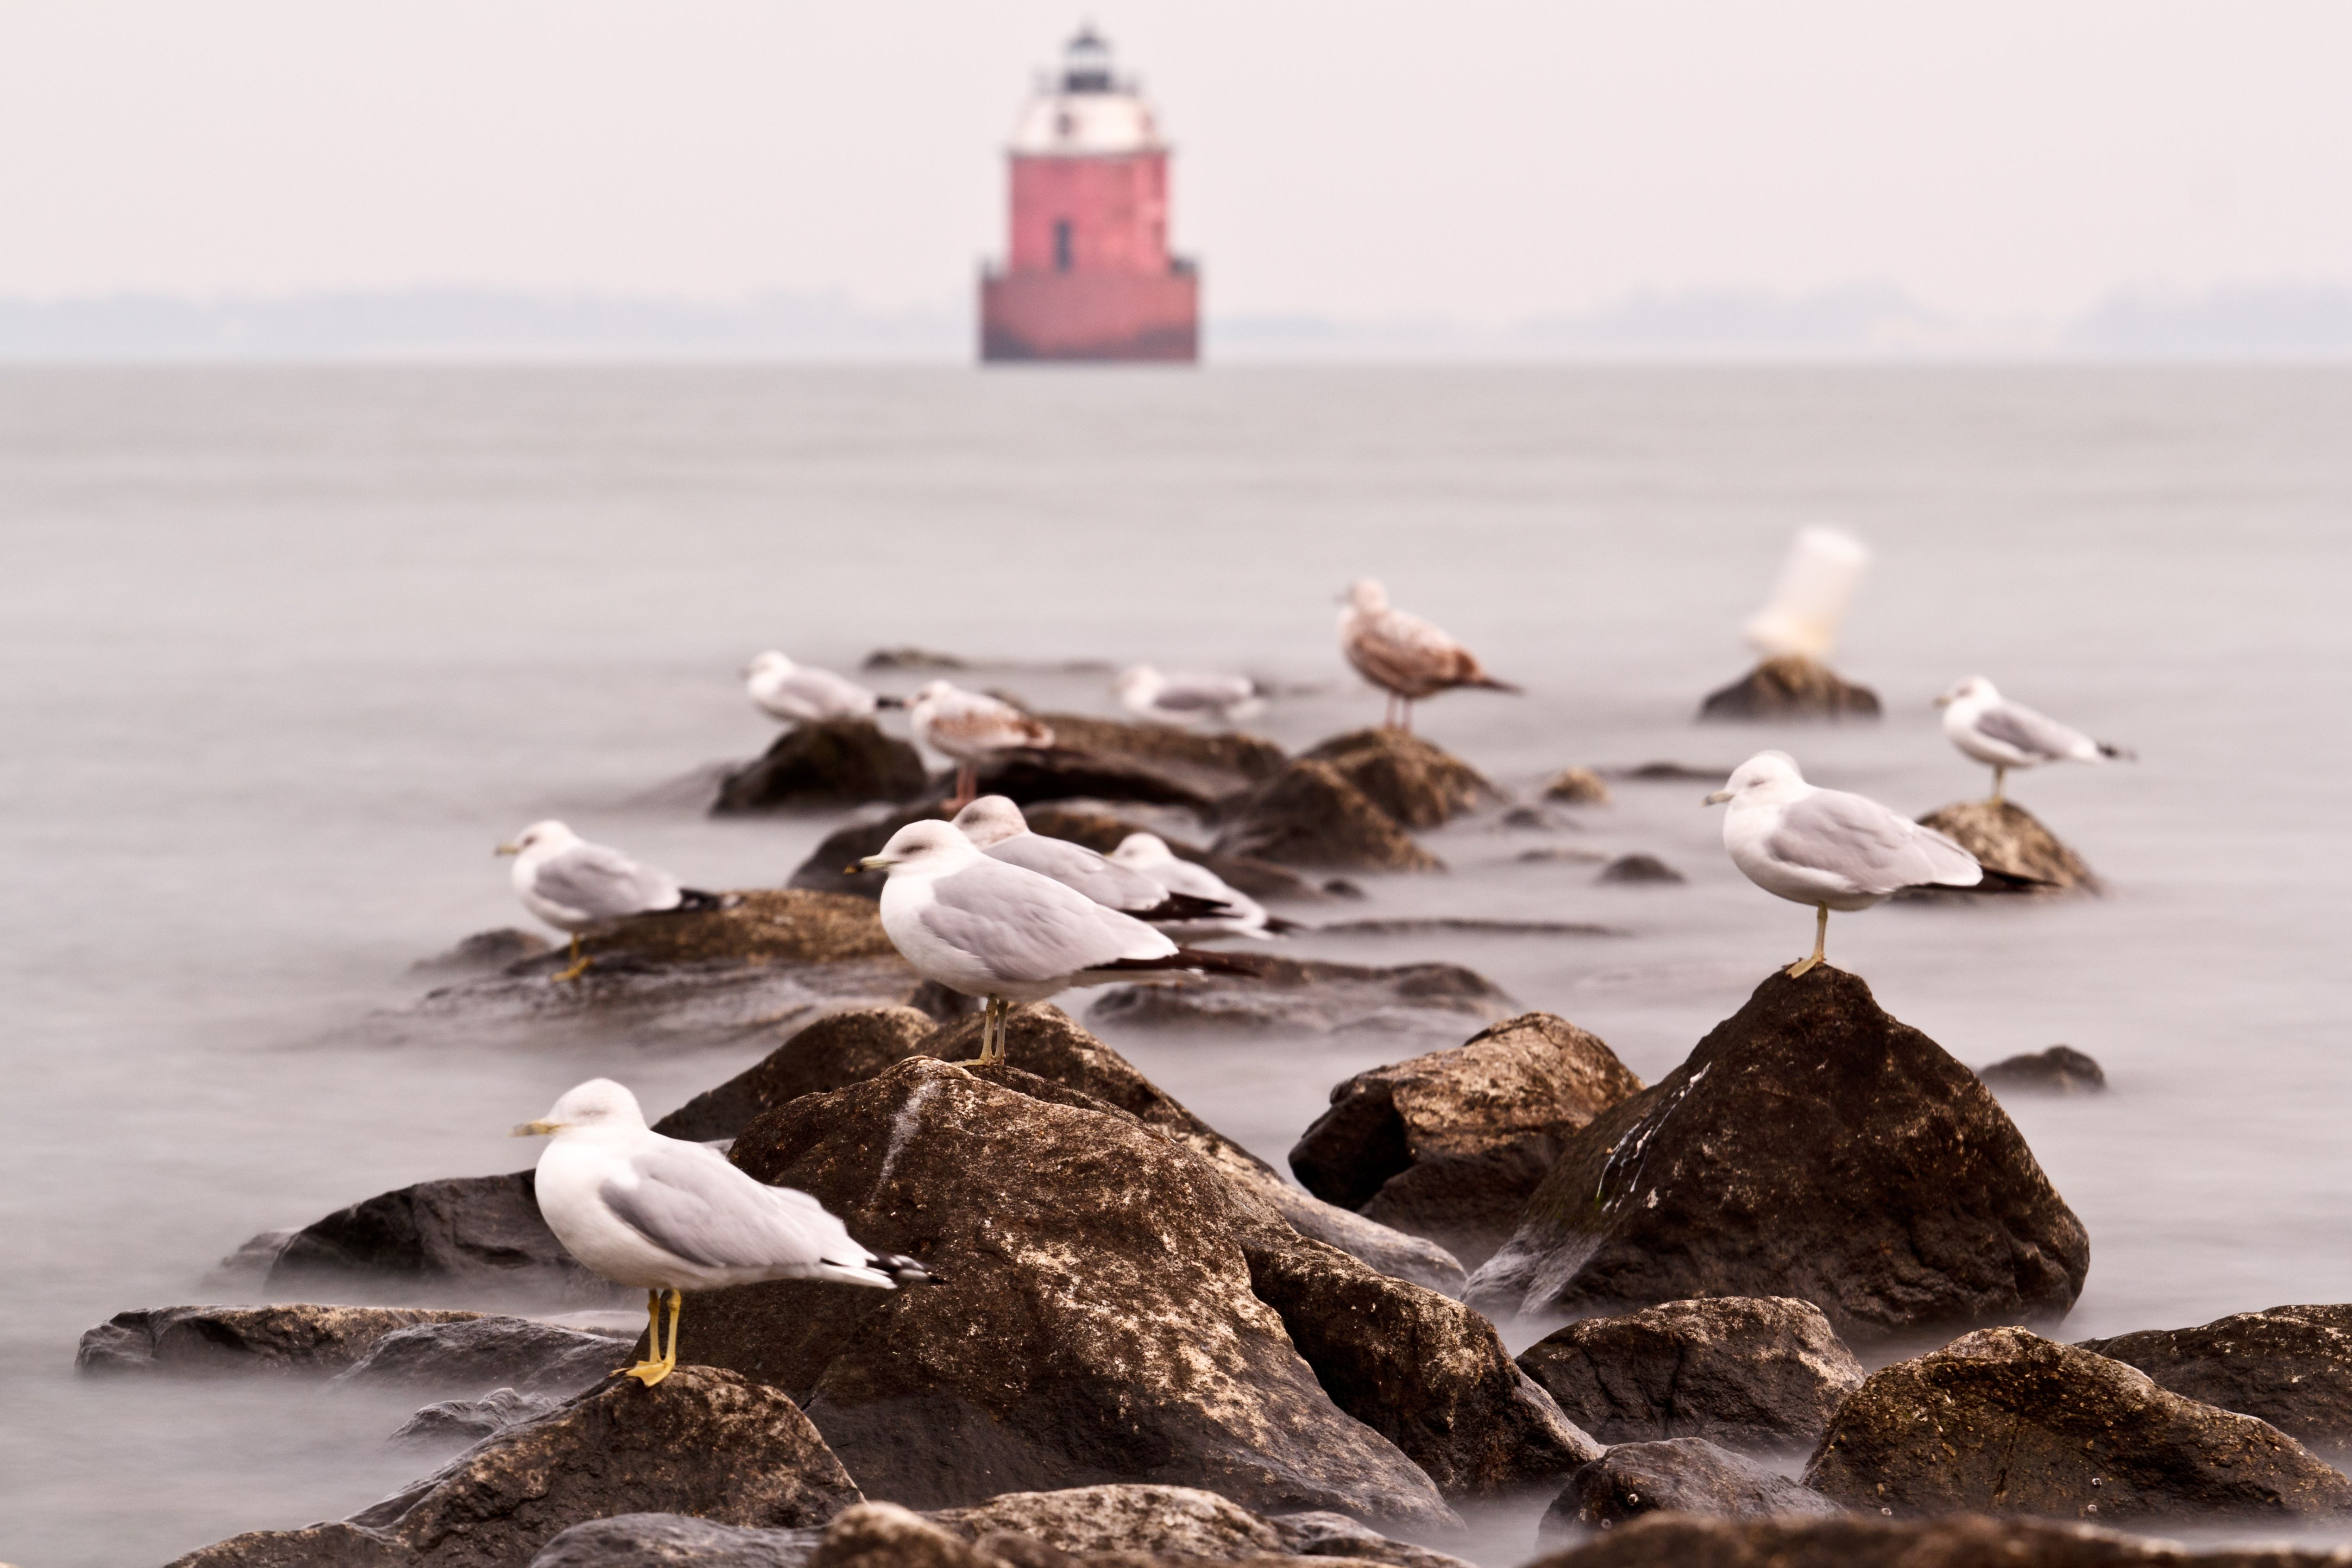 Seagulls perched on rocks in front of lighthouse